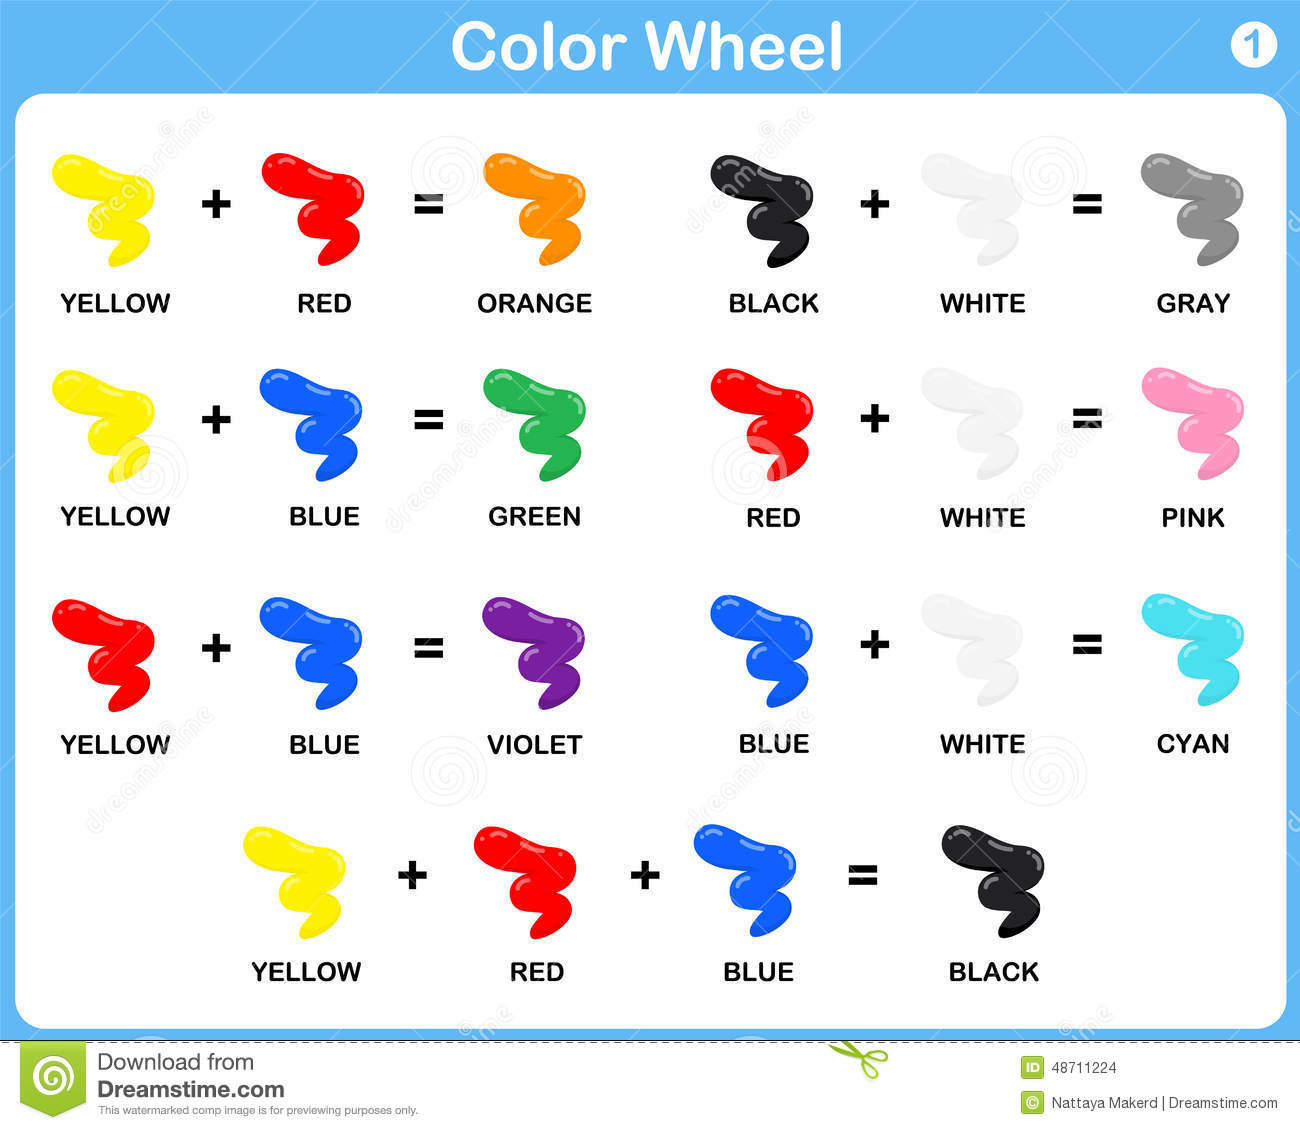 Color Wheel Worksheet For Kids Vector Image 48711224 – Color Worksheet for Kindergarten